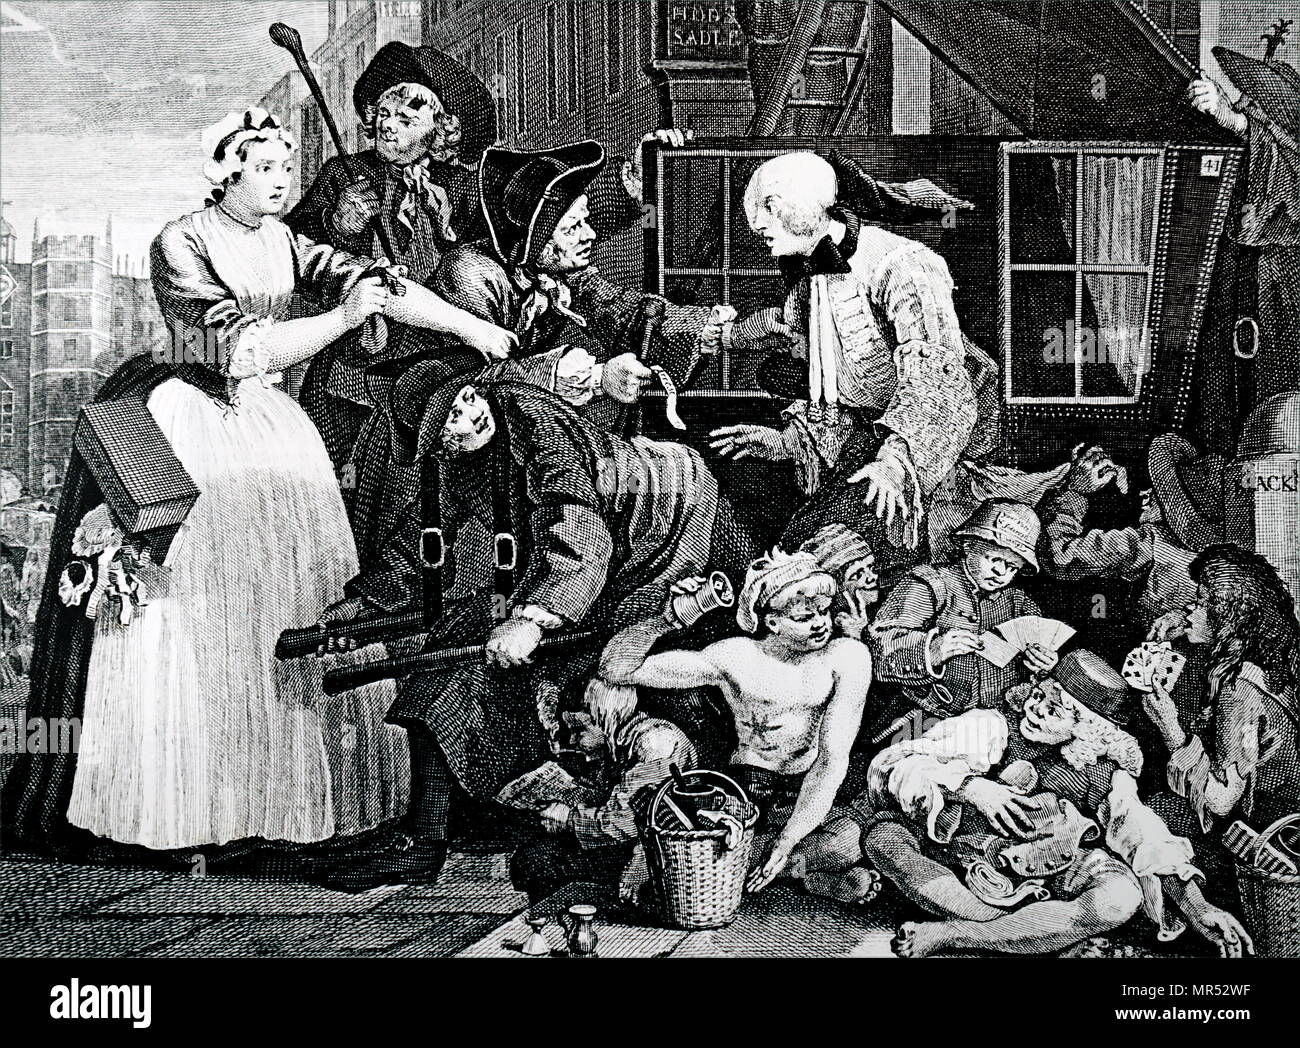 Engraving titled 'The Rake's Progress' by William Hogarth. The Rake is being arrested in sight of St James's Palace, while young boys sit gaming on the pavement. The one on the right foreground appears to be a congenital syphilitic. William Hogarth (1697-1764) an English painter, printmaker, pictorial satirist, social critic, and editorial cartoonist. Dated 19th century - Stock Image